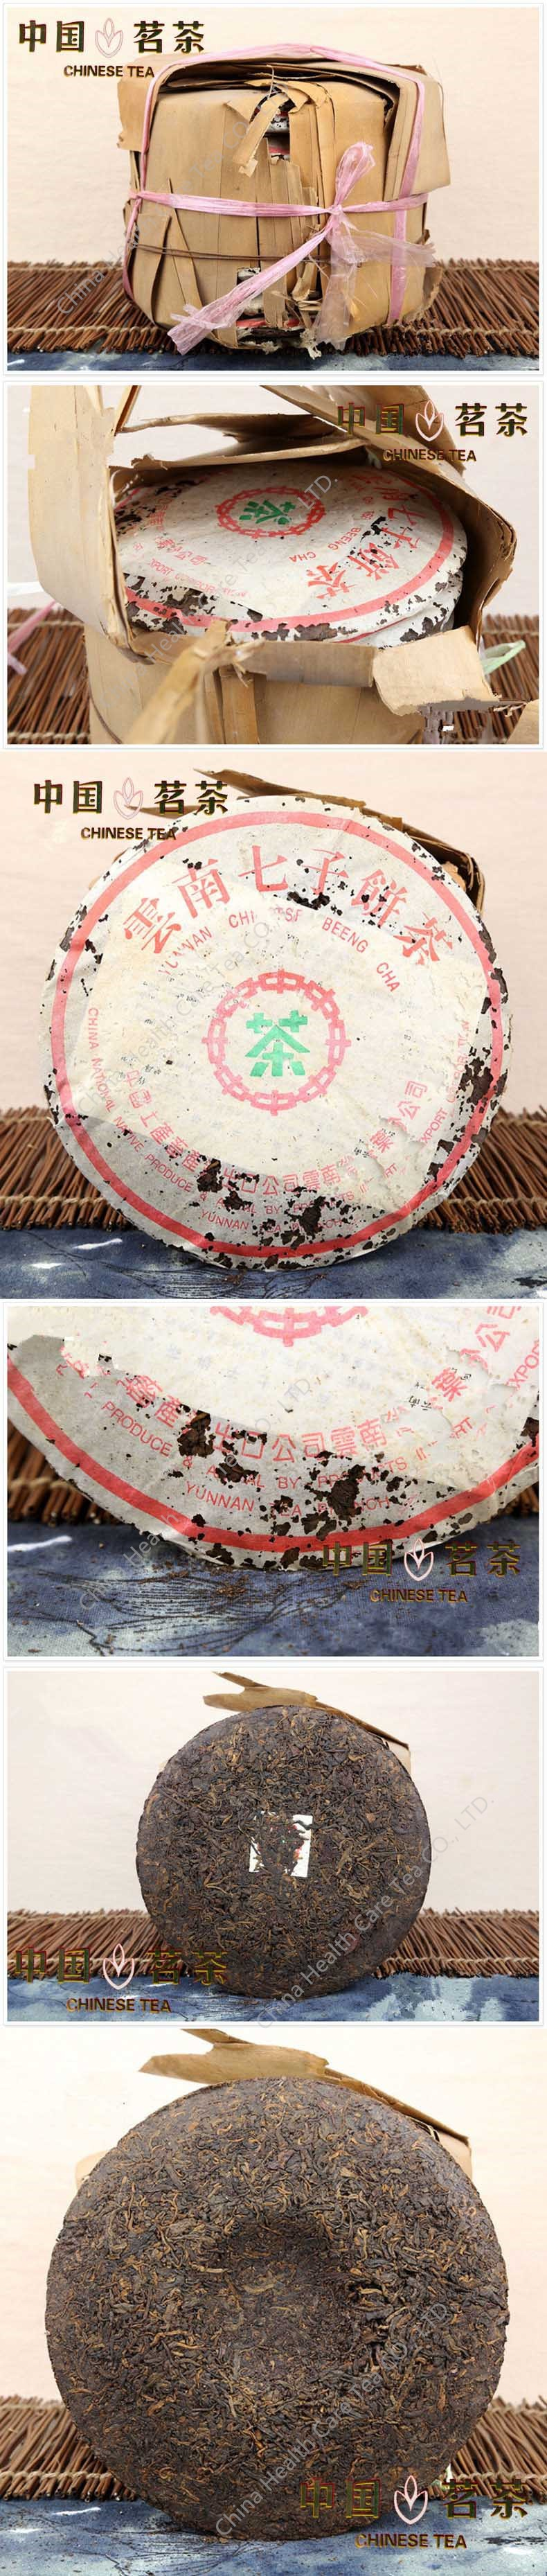 Made in 1960 Raw Pu Er Tea, 357g Oldest Puer Tea, Ansestor Antique, Honey Sweet, Dull-red Puerh tea, Ancient Tree